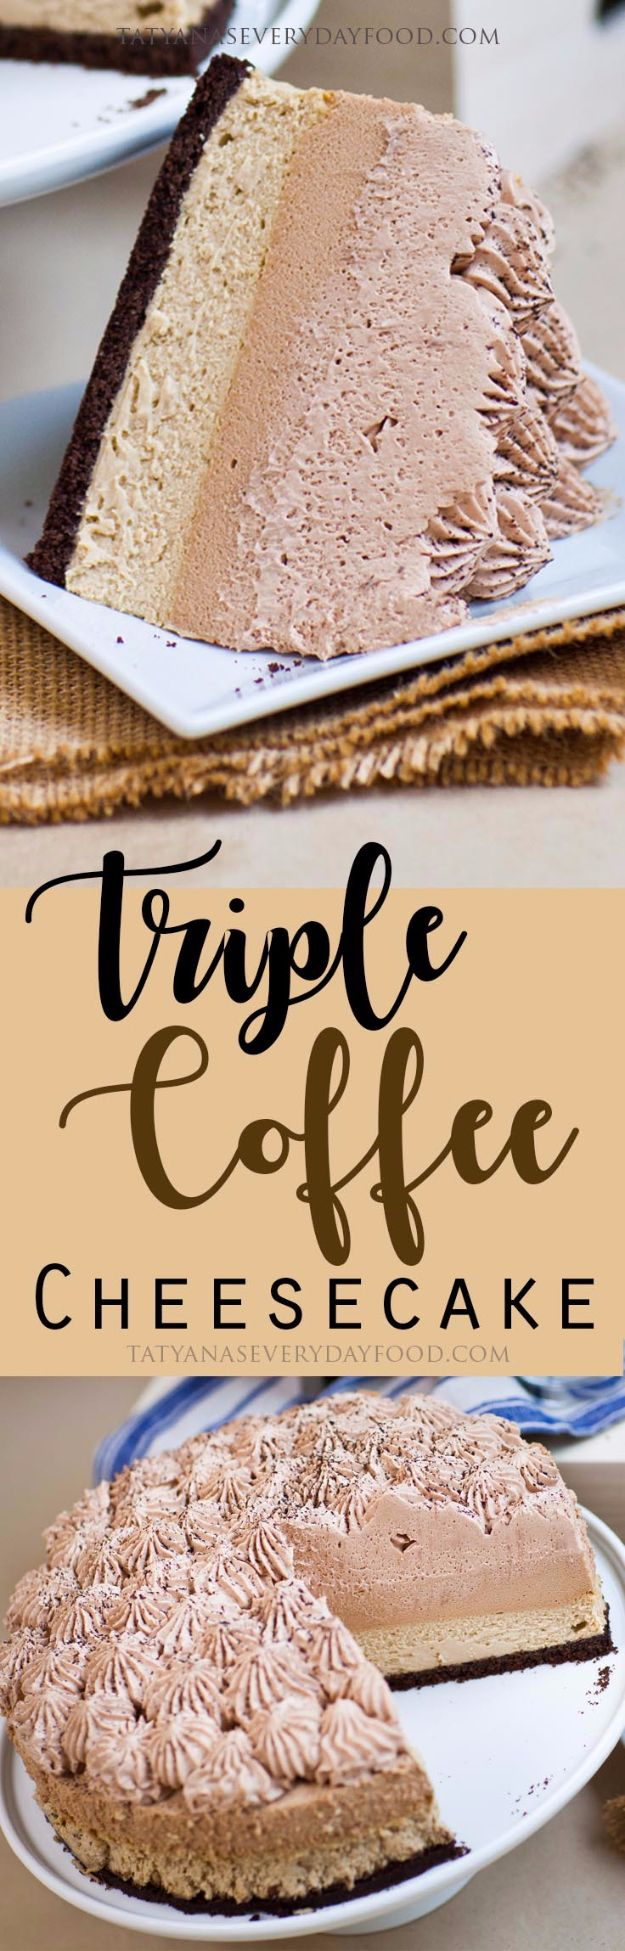 Best Cheesecake Recipes - Triple Coffee Cheesecake - Easy and Quick Recipe Ideas for Cheesecakes and Desserts - Chocolate, Simple Plain Classic, New York, Mini, Oreo, Lemon, Raspberry and Quick No Bake - Step by Step Instructions and Tutorials for Yummy Dessert - DIY Projects and Crafts by DIY JOY http://diyjoy.com/best-cheesecake-recipes